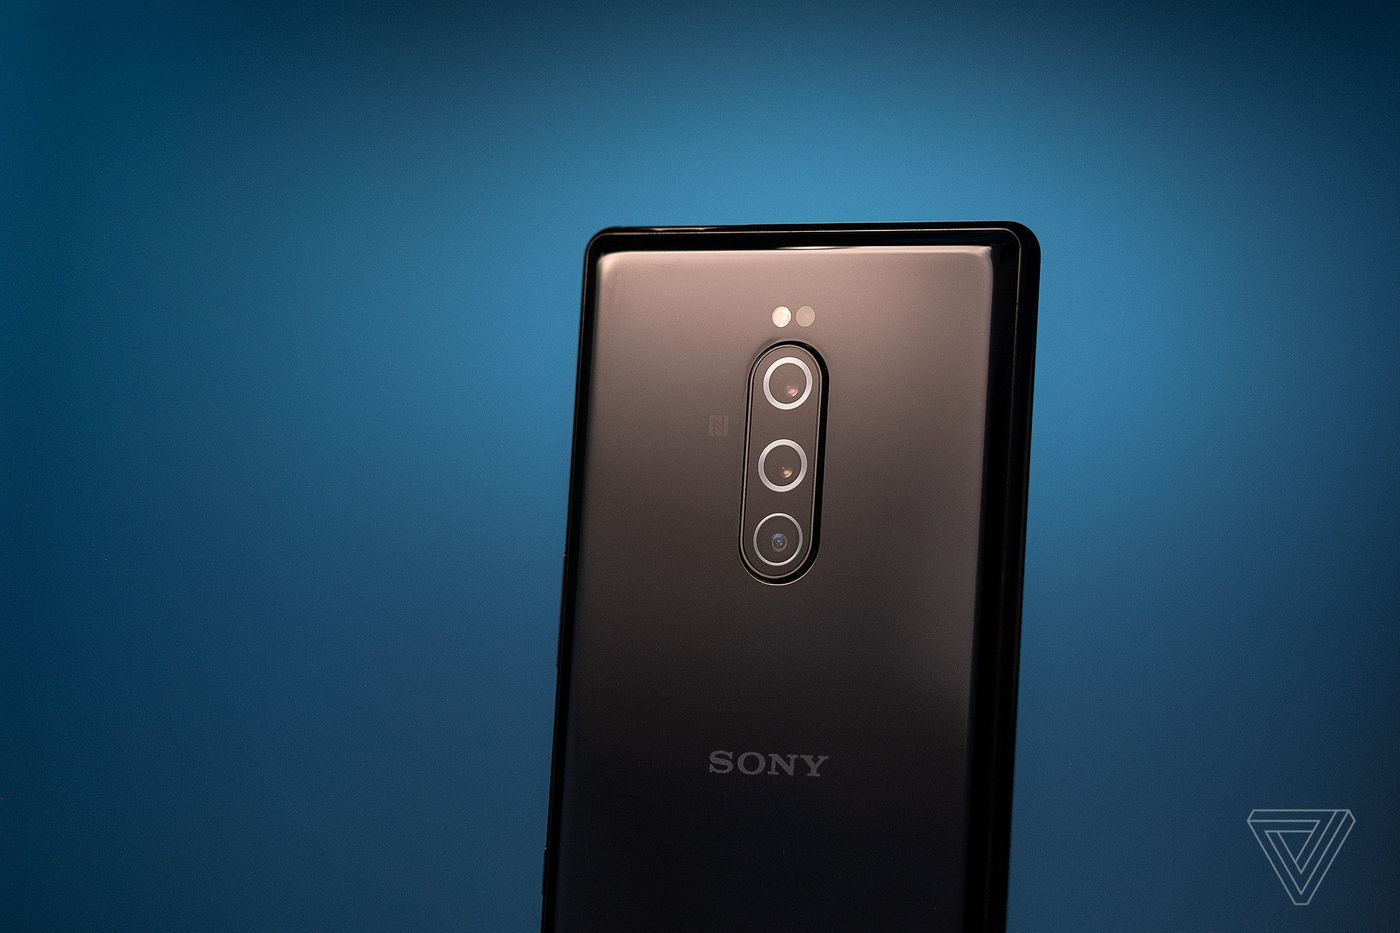 Sony Xperia 1 review: tall phone falls short - The Verge